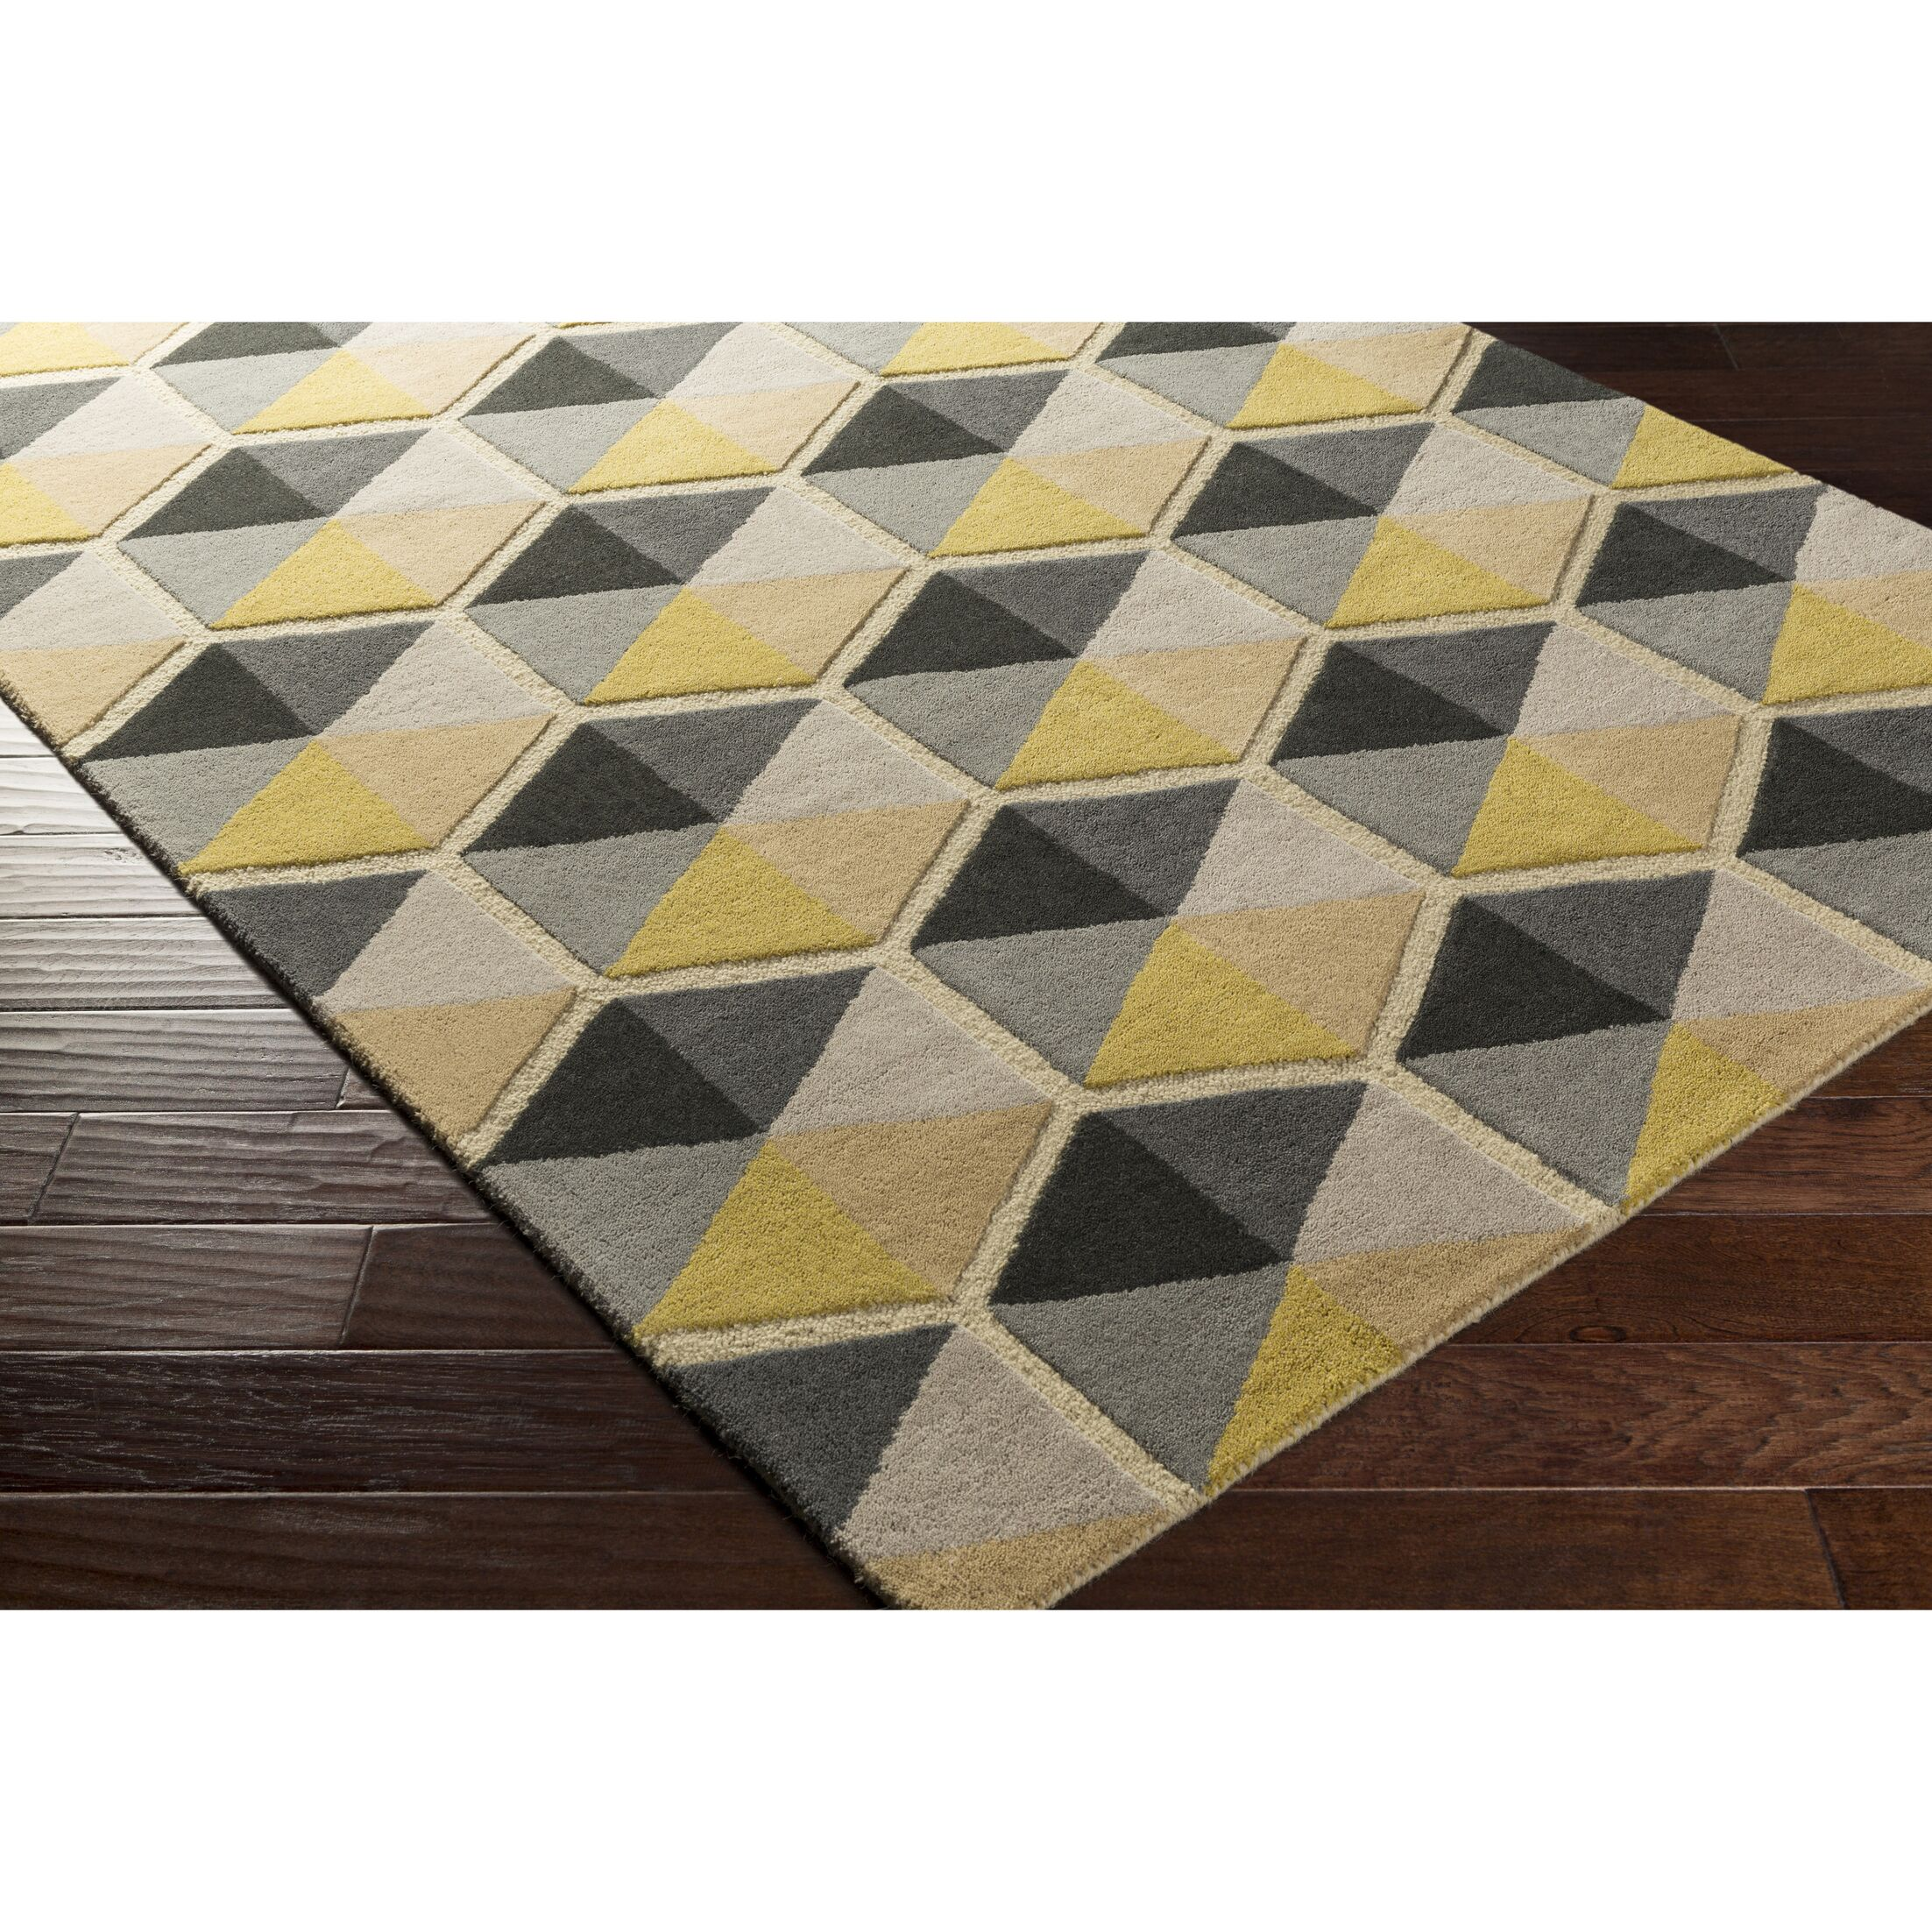 Nida Hand-Tufted Neutral/Brown Area Rug Rug Size: Runner 2'6